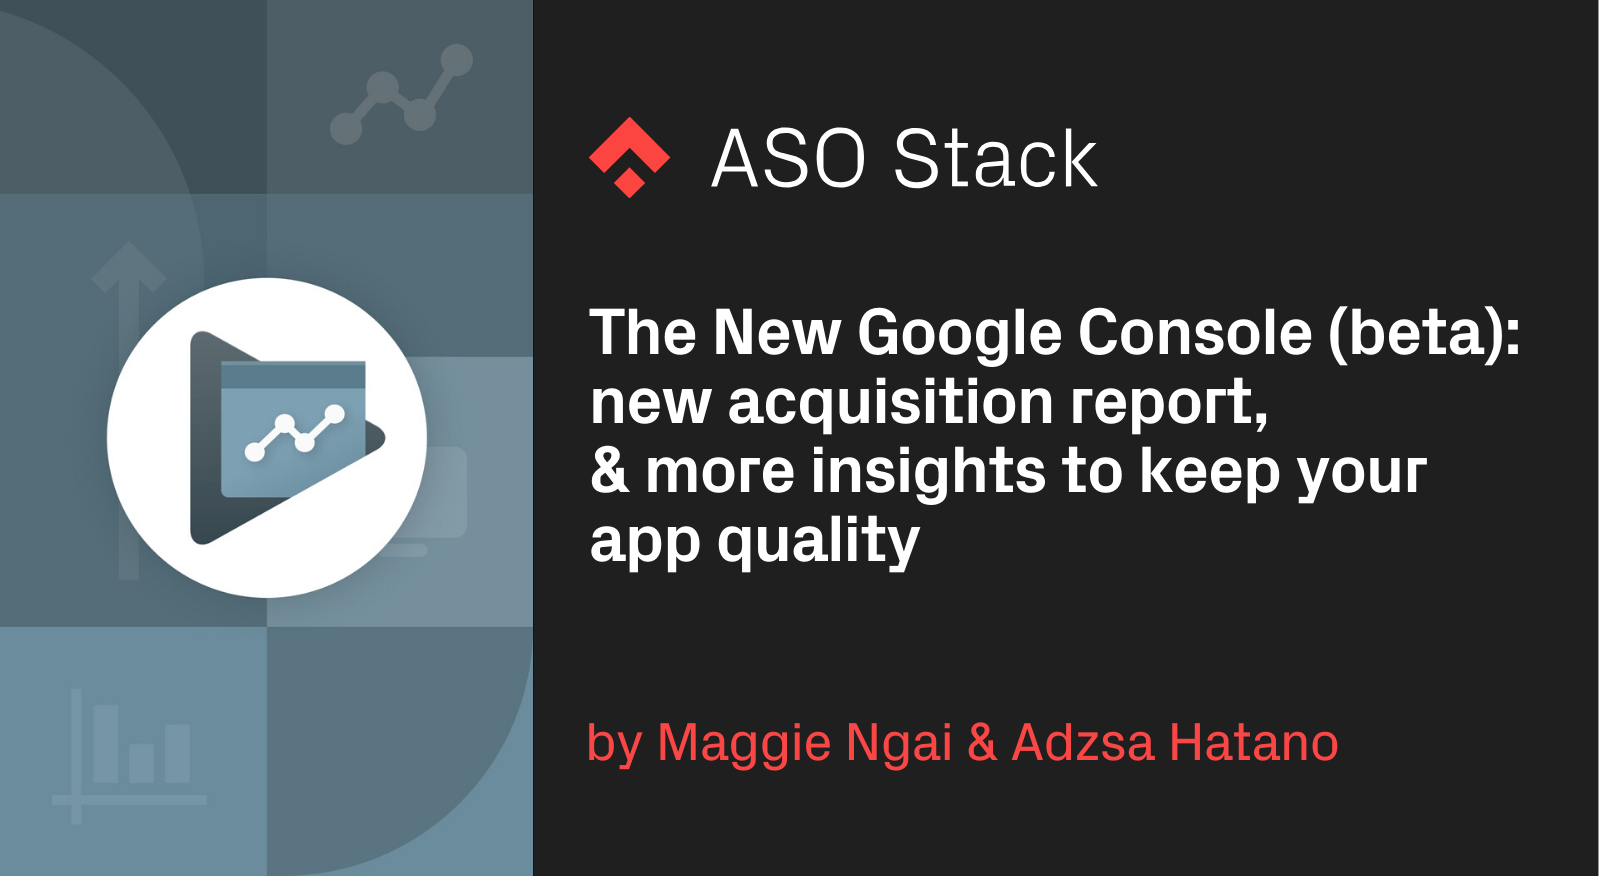 The New Google Console (Beta): New Acquisition Report & Insights to Keep Your App Quality